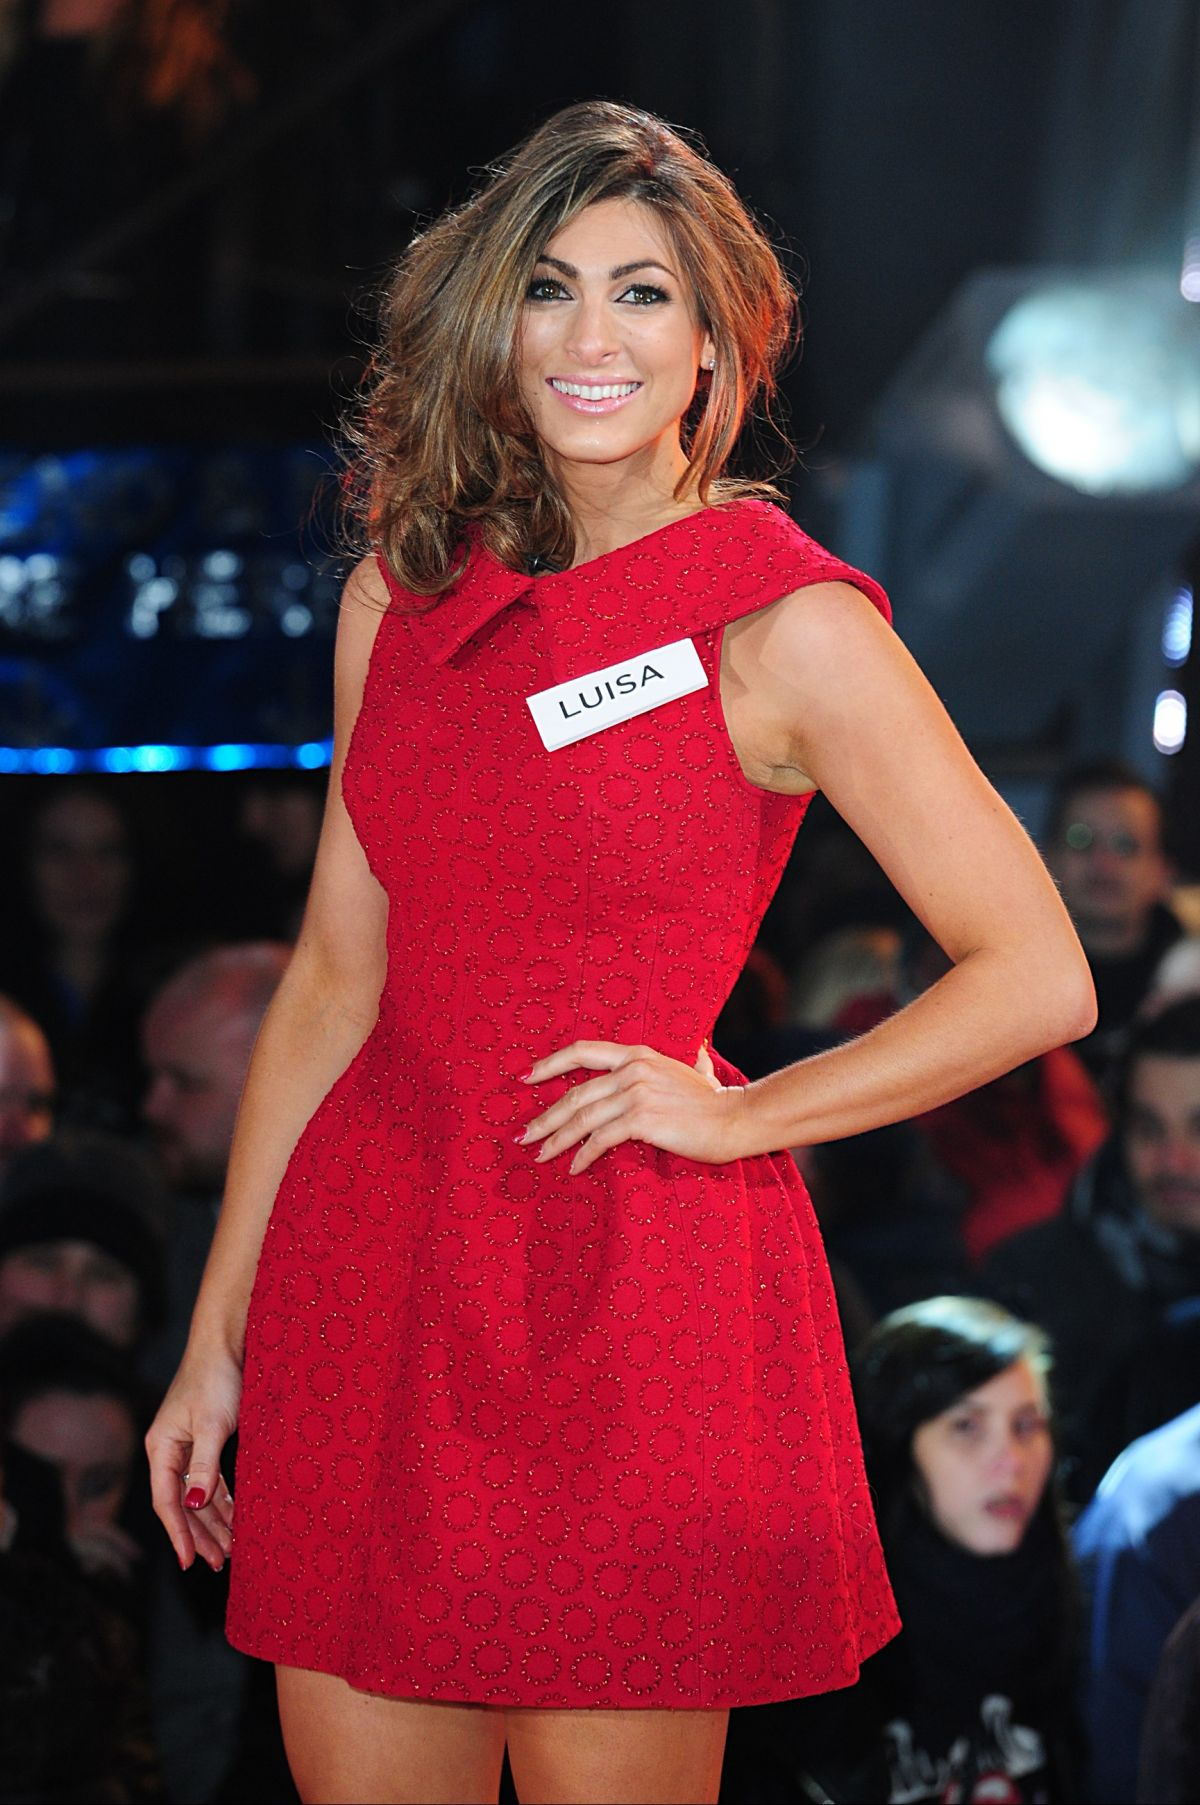 'The Apprentice' Luisa Zissman to get own baking show?